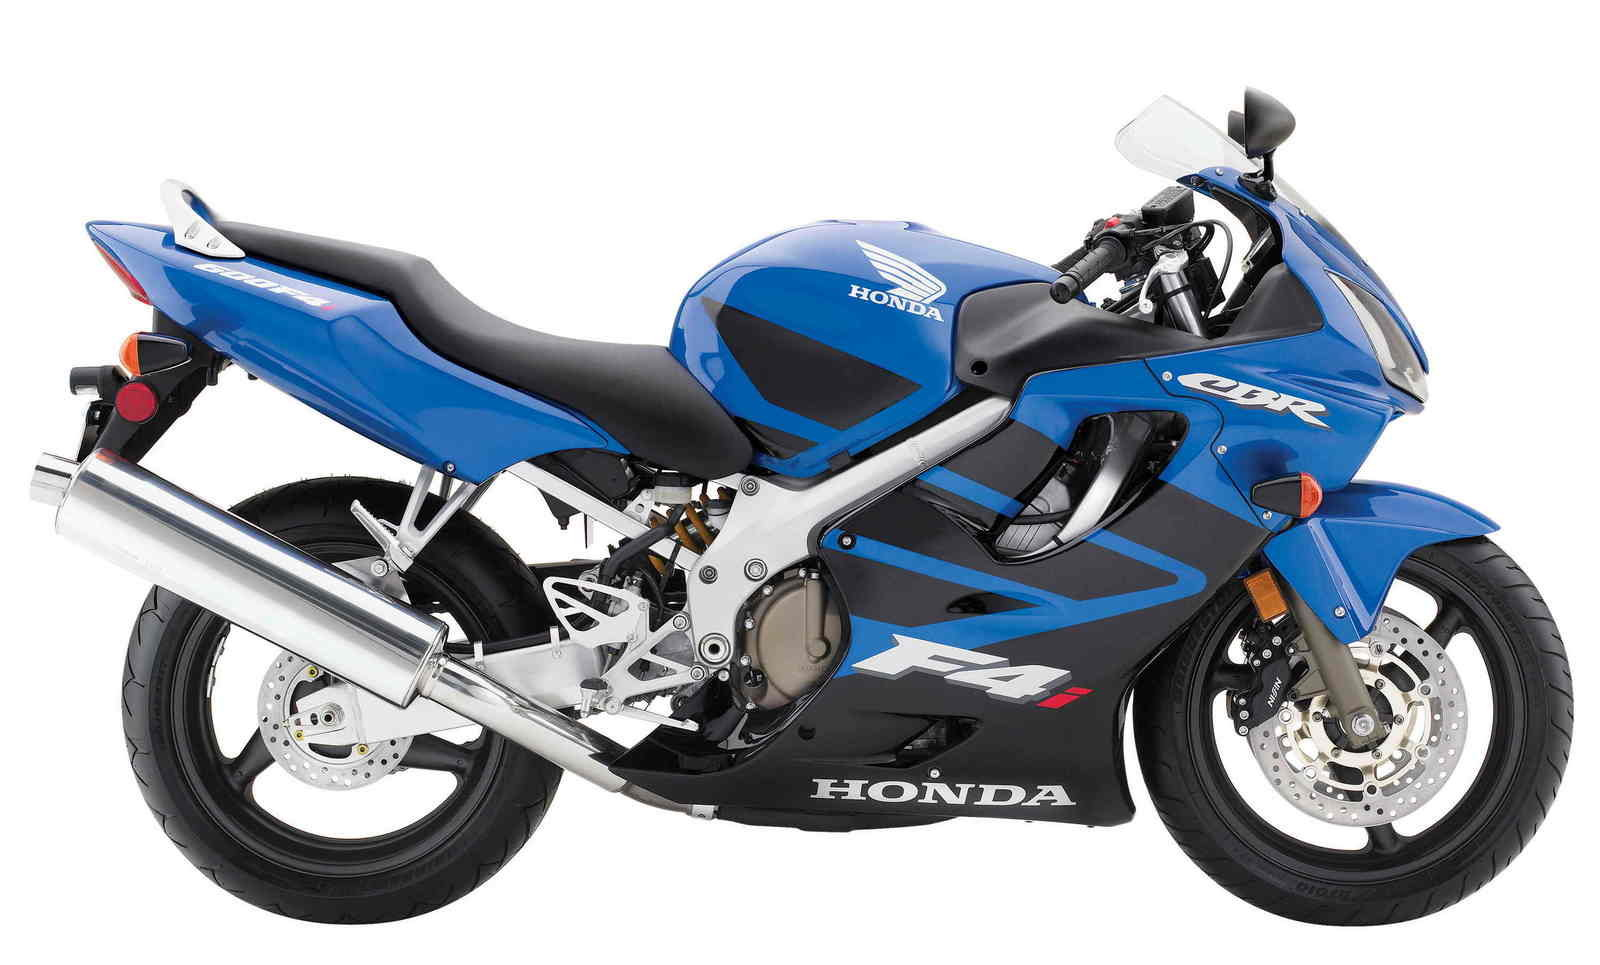 2006 Honda CBR600F4i Review